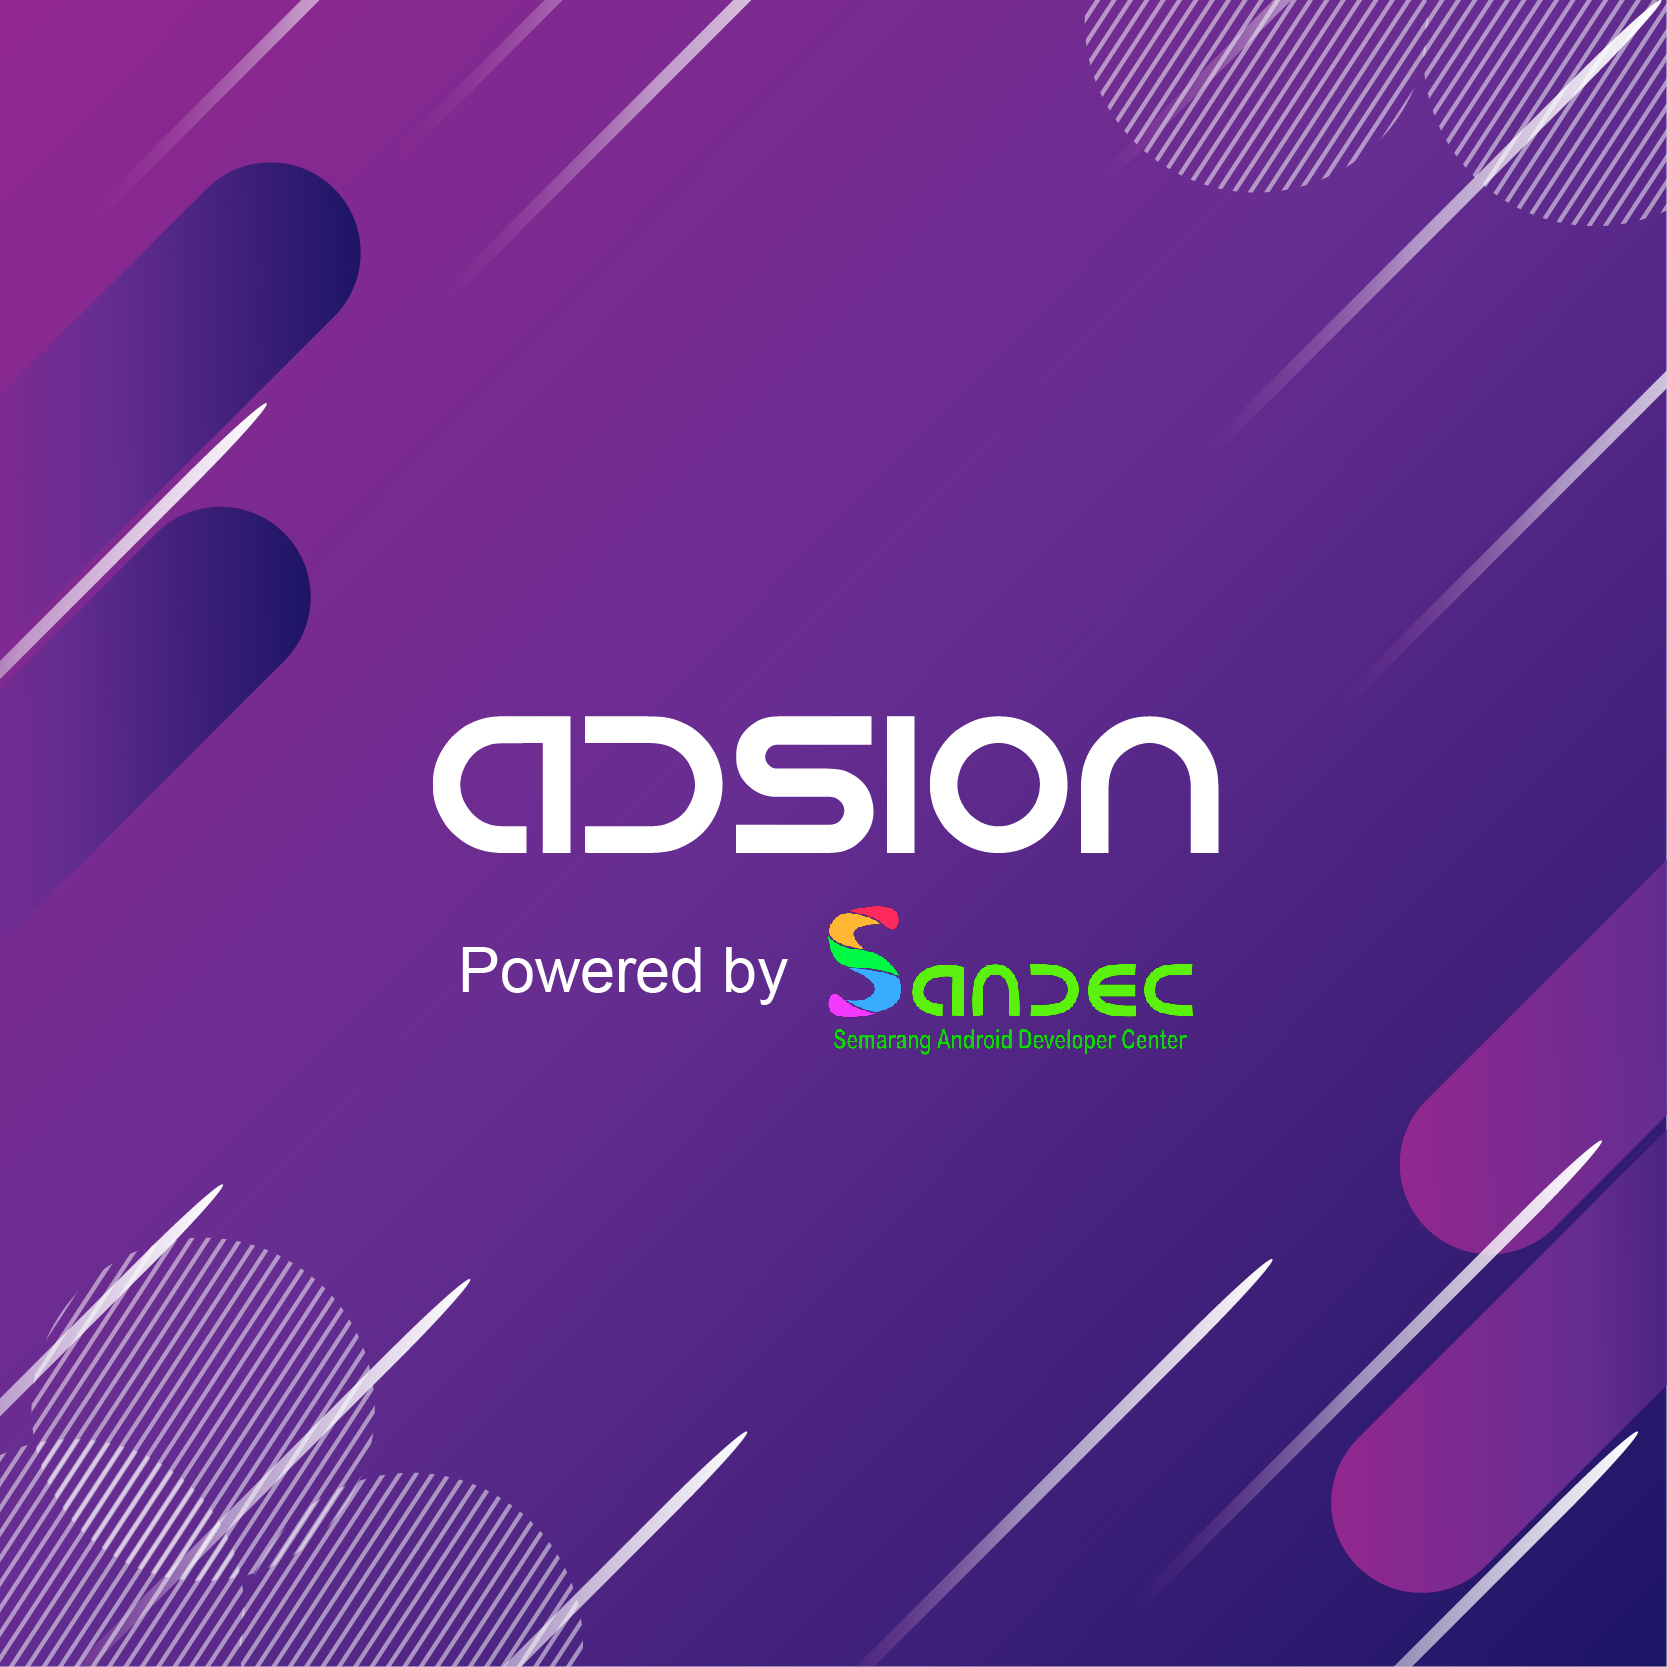 ADSION (Android Developer Sharing and Action) Workshop Class Android Jetpack